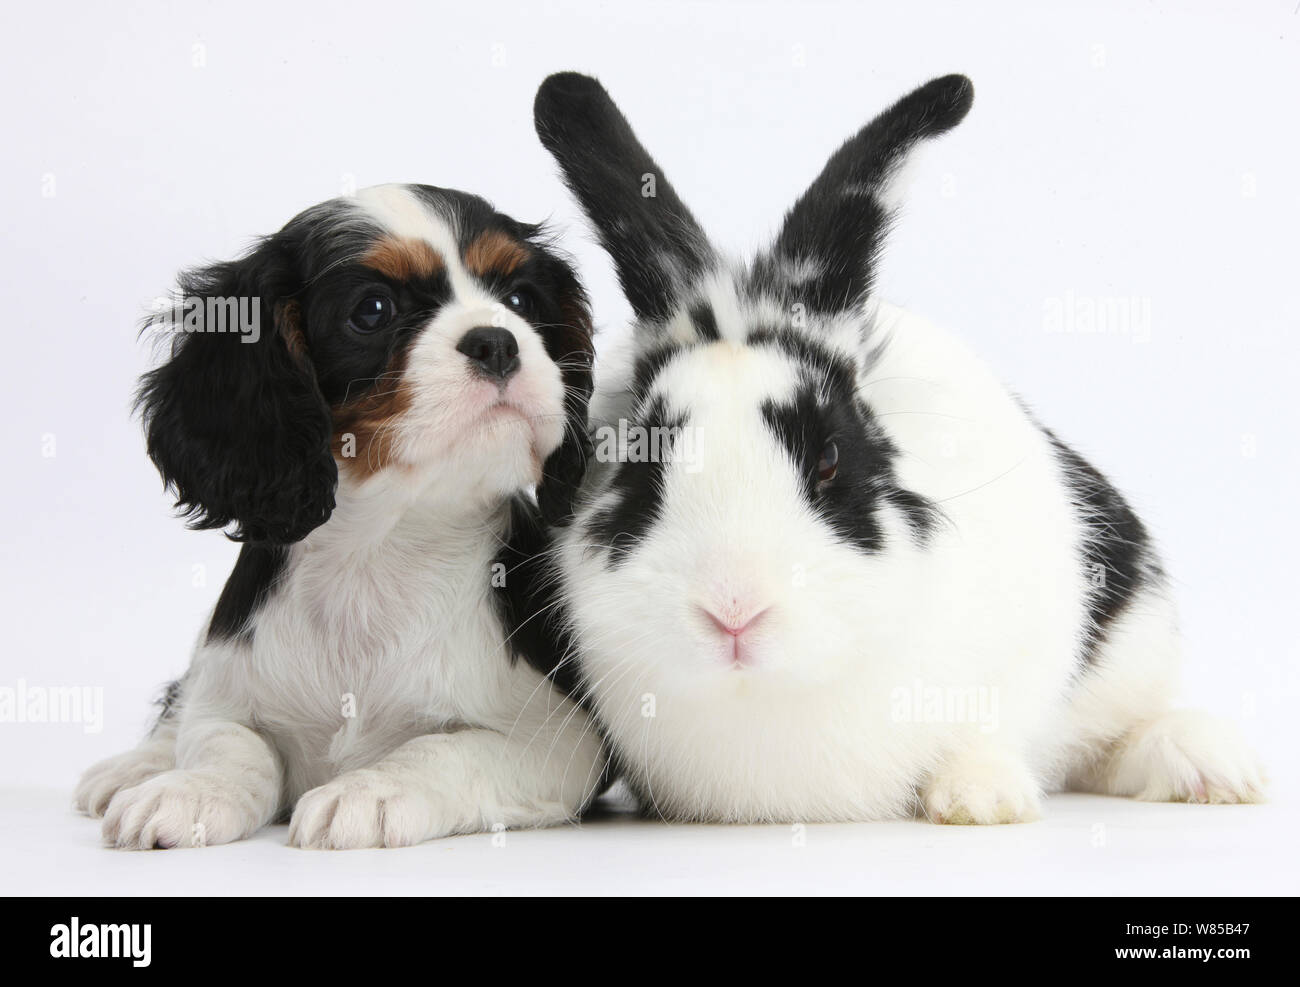 Tricolour Cavalier King Charles Spaniel Puppy With Black And White Rabbit Bandit Stock Photo Alamy